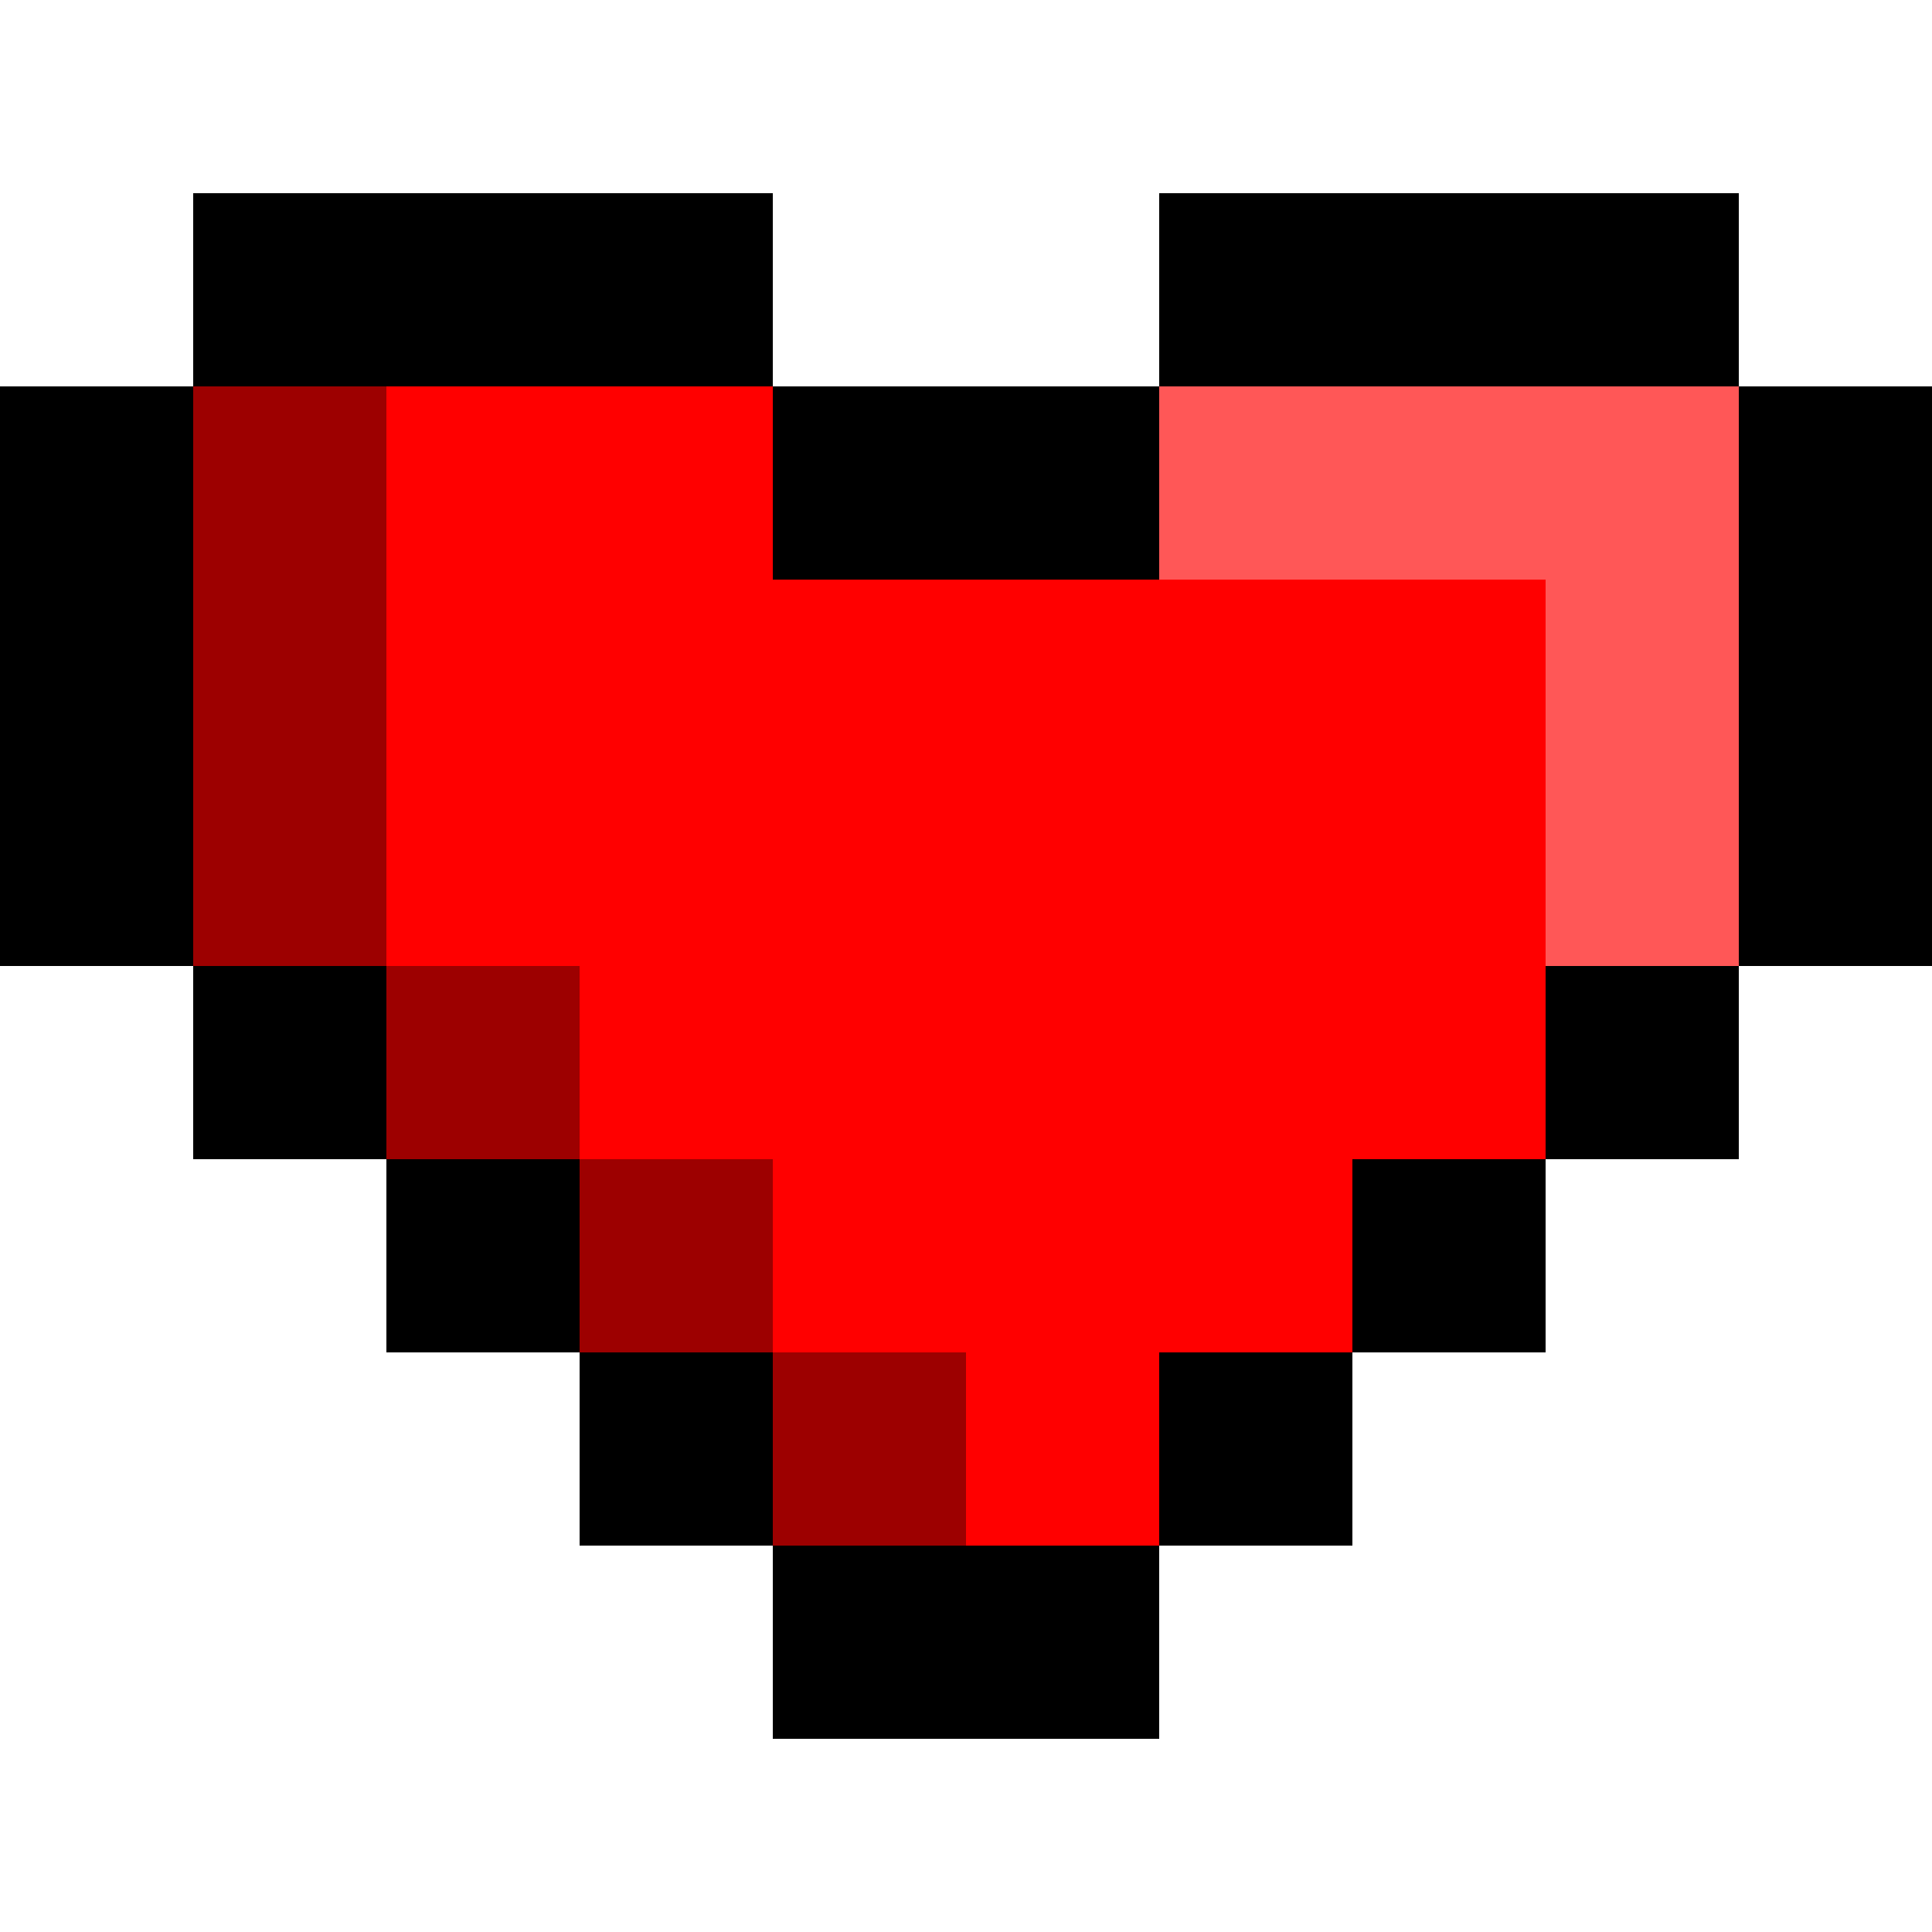 8 bit heart clipart picture transparent stock Clipart - 8Bit Heart picture transparent stock